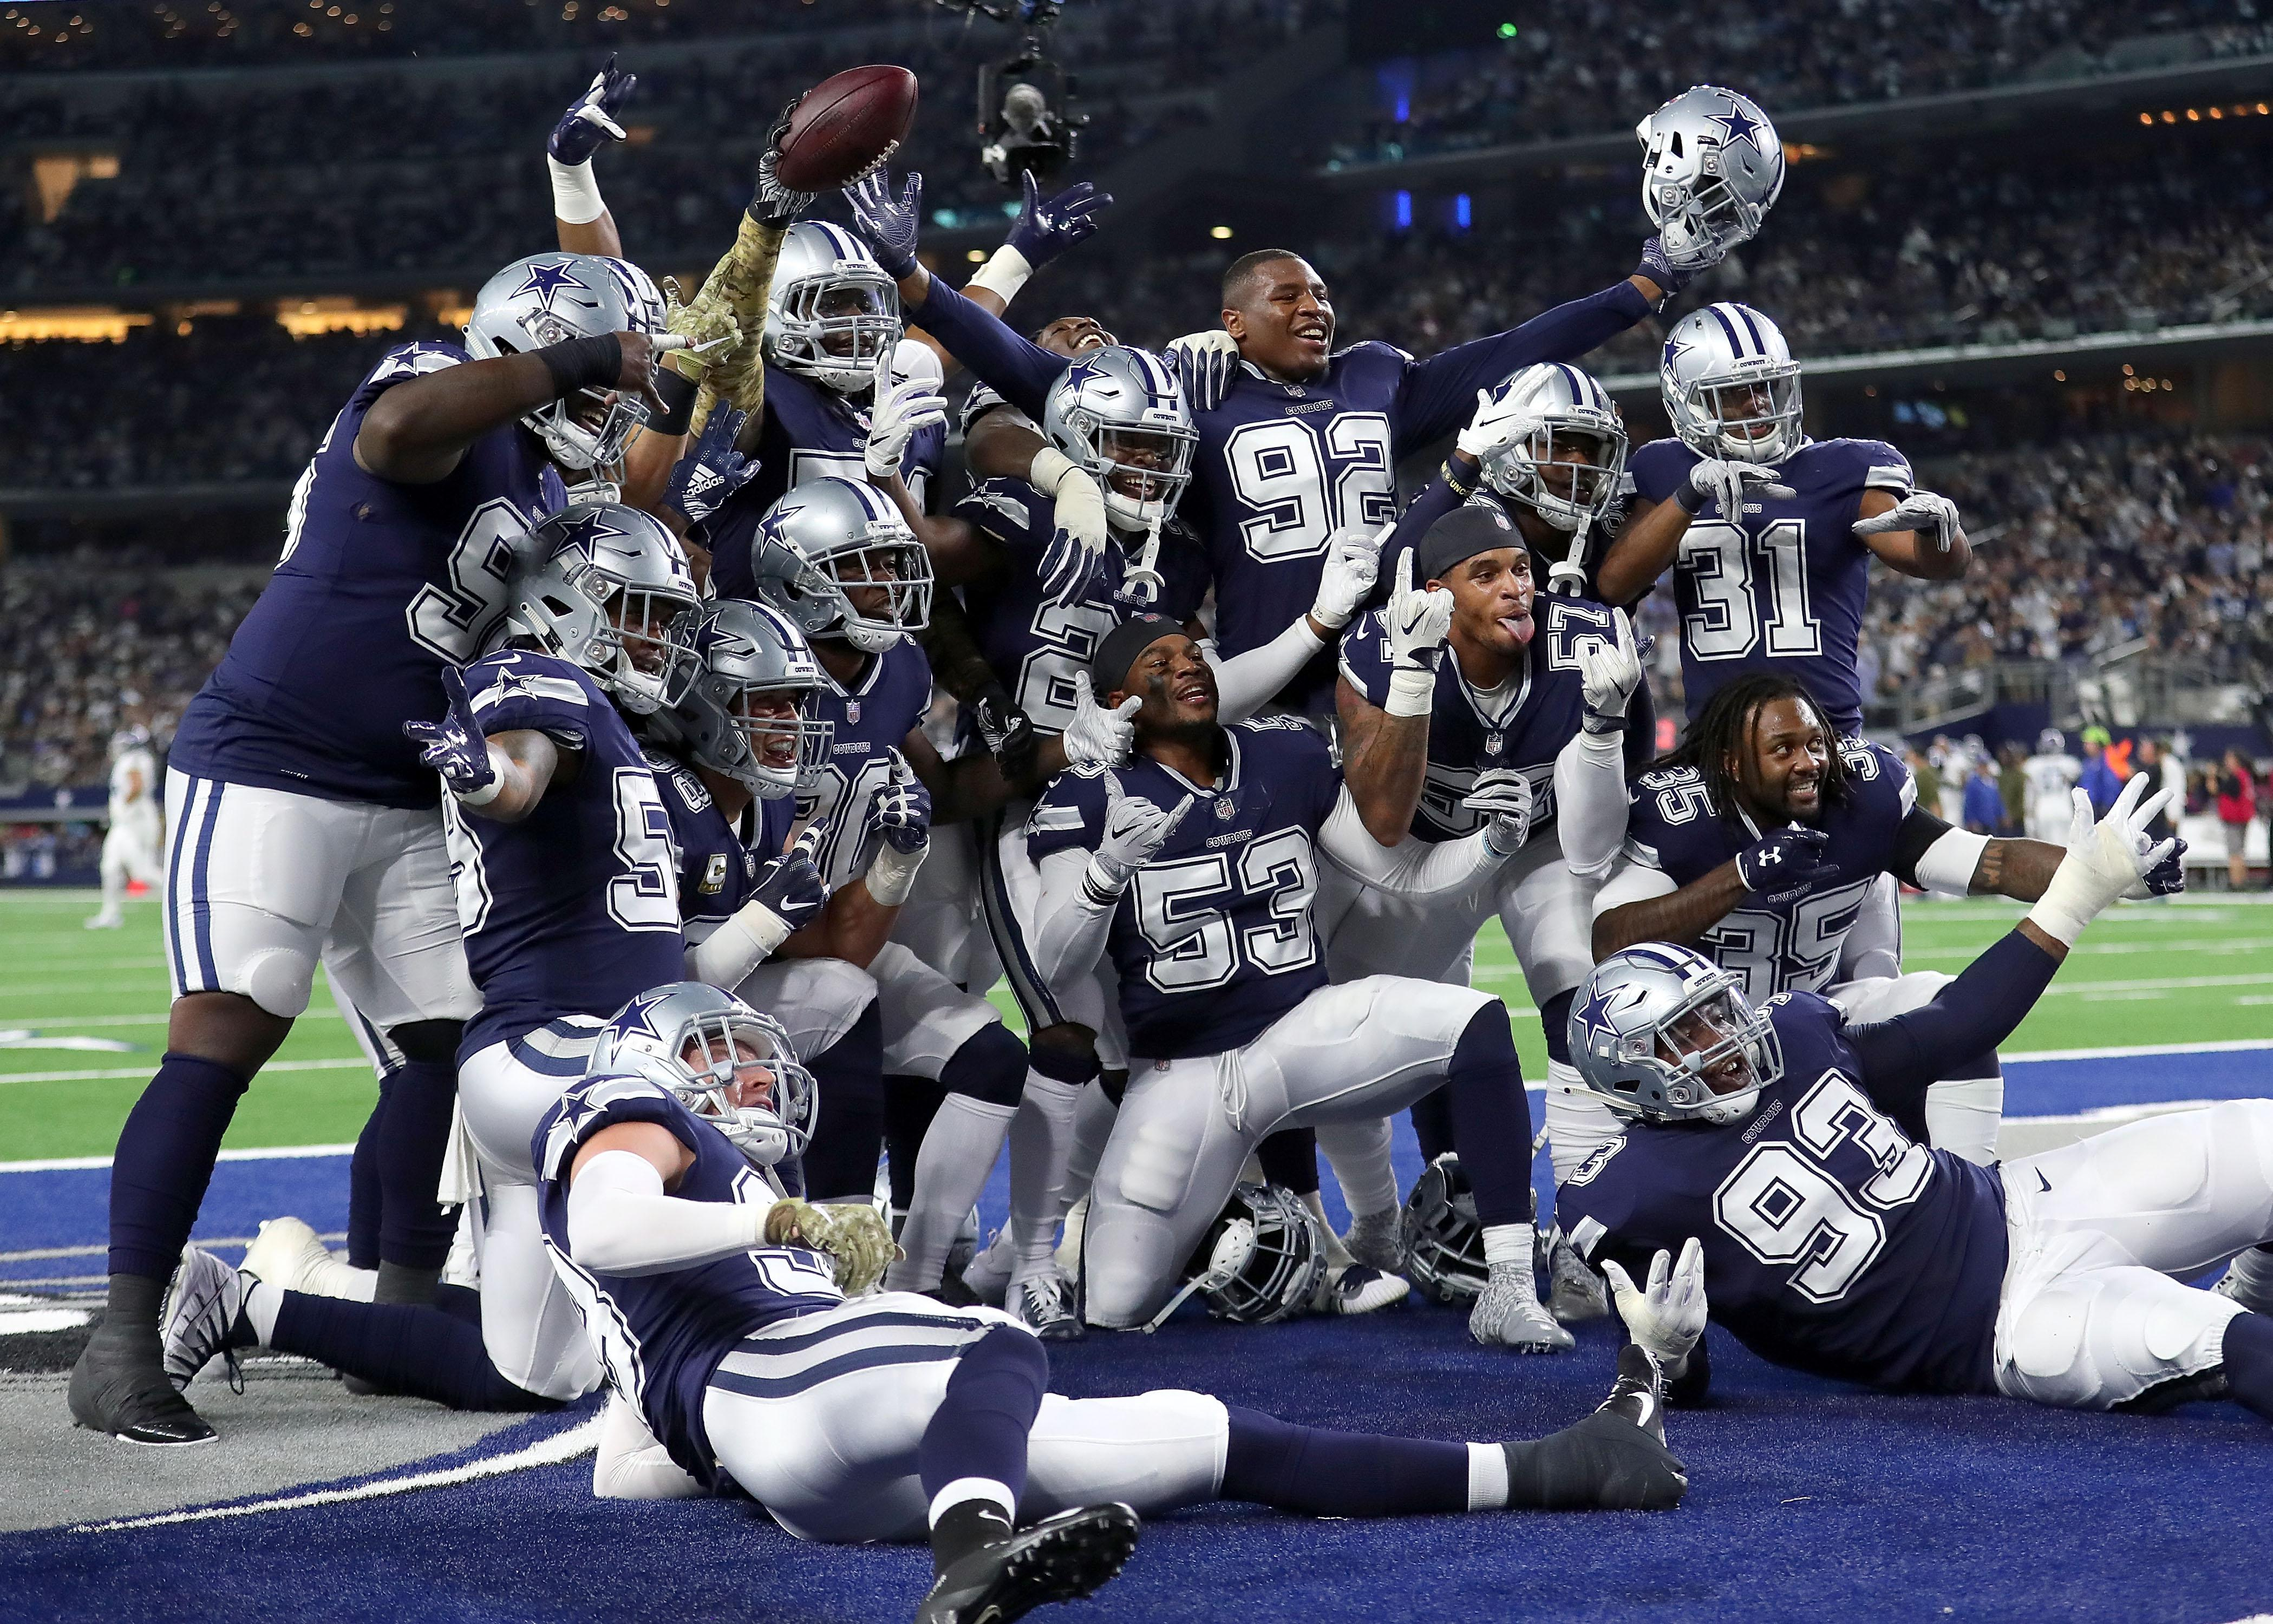 ARLINGTON, TX - NOVEMBER 05:  The Dallas Cowboys defensive line poses for a photo in the end zone after a fumble recovery against the Tennessee Titans in the first quarter of a football game at AT&T Stadium on November 5, 2018 in Arlington, Texas. (Photo by Tom Pennington/Getty Images)